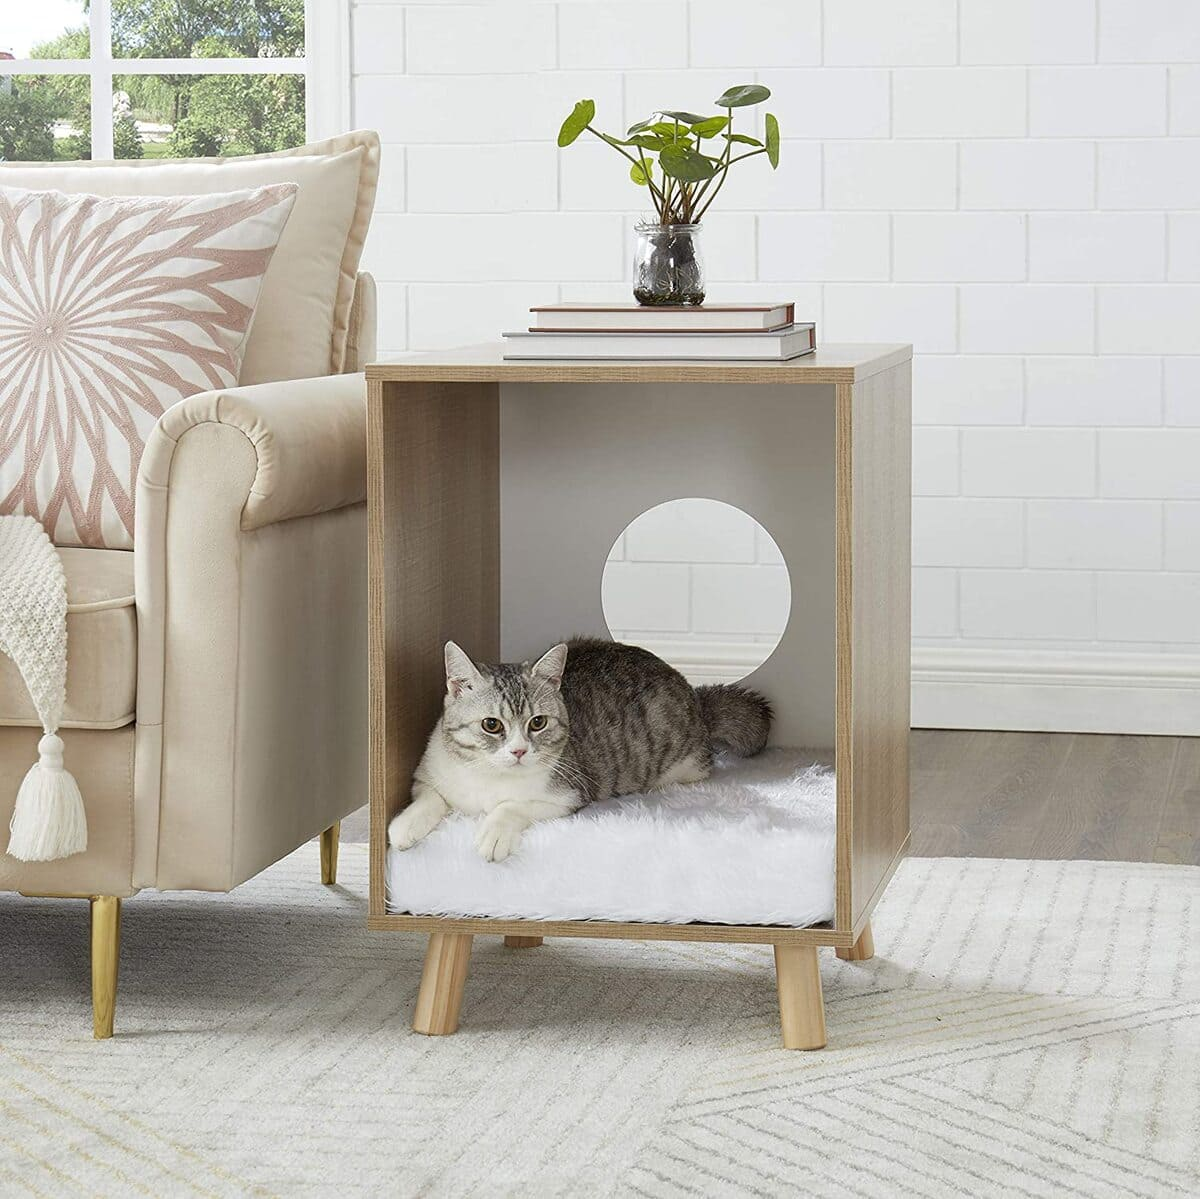 pet furniture 9 - 18 amazing pet furniture ideas that are perfect solutions for small spaces